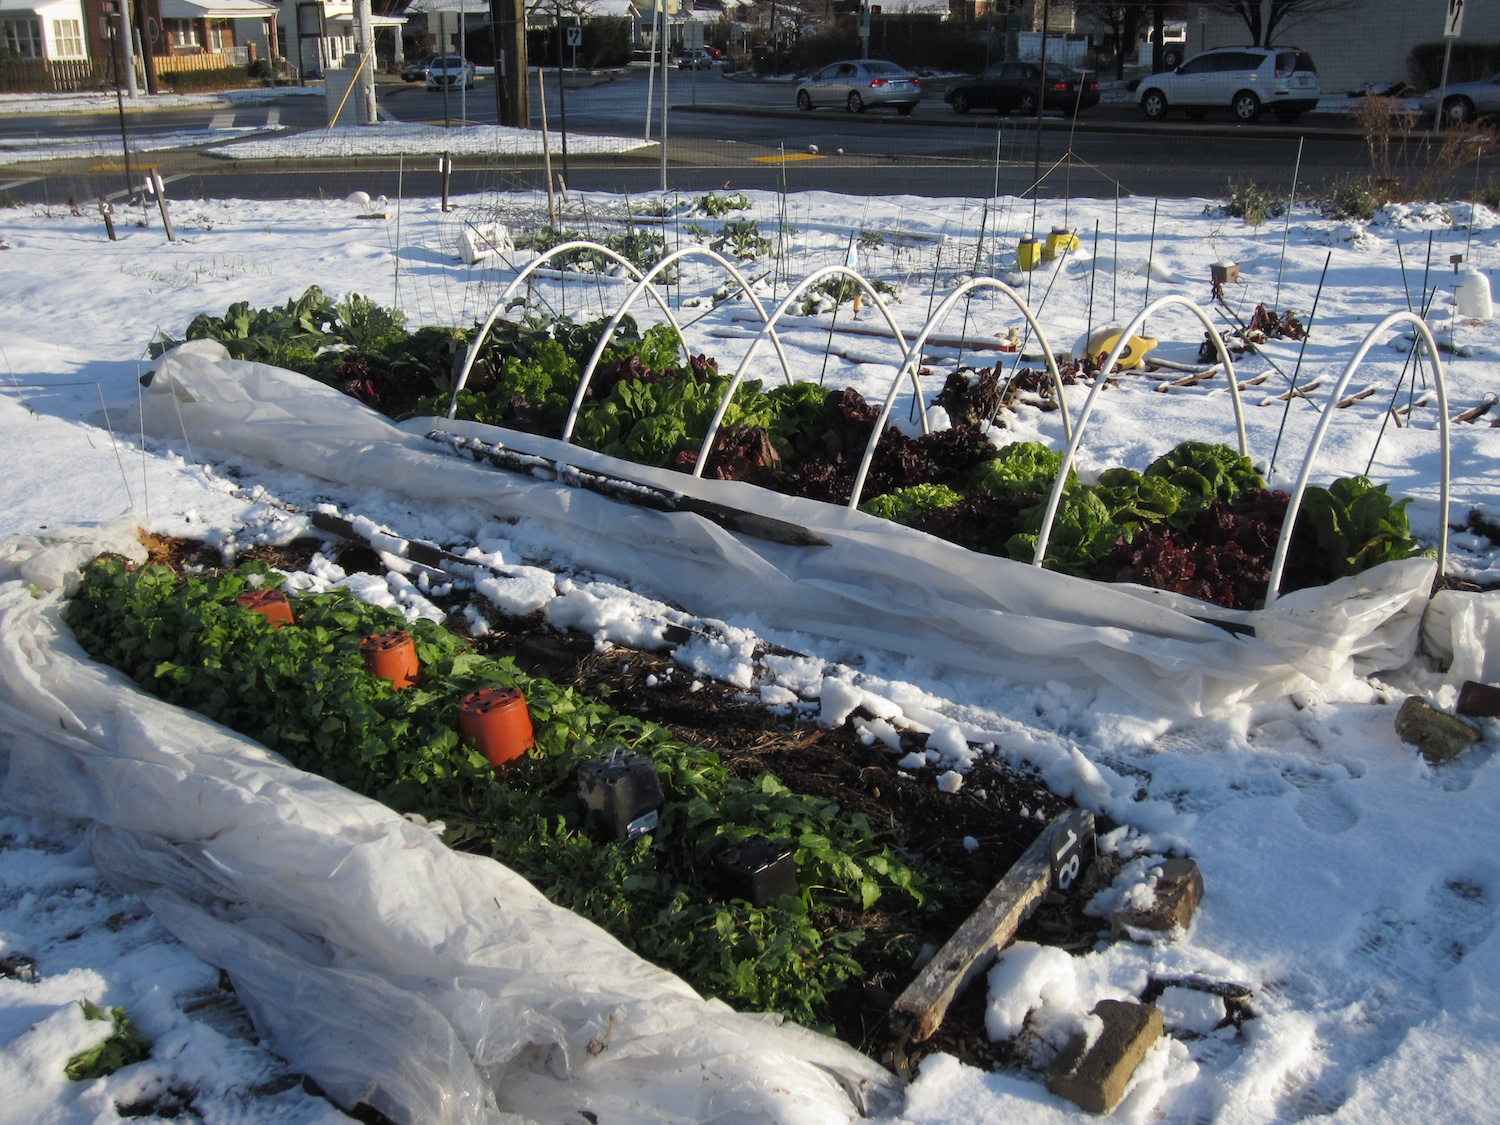 Winter gardening tips best winter crops and cold hardy varieties eat tomorrow blog - Gardening mistakes maintaining garden winter ...